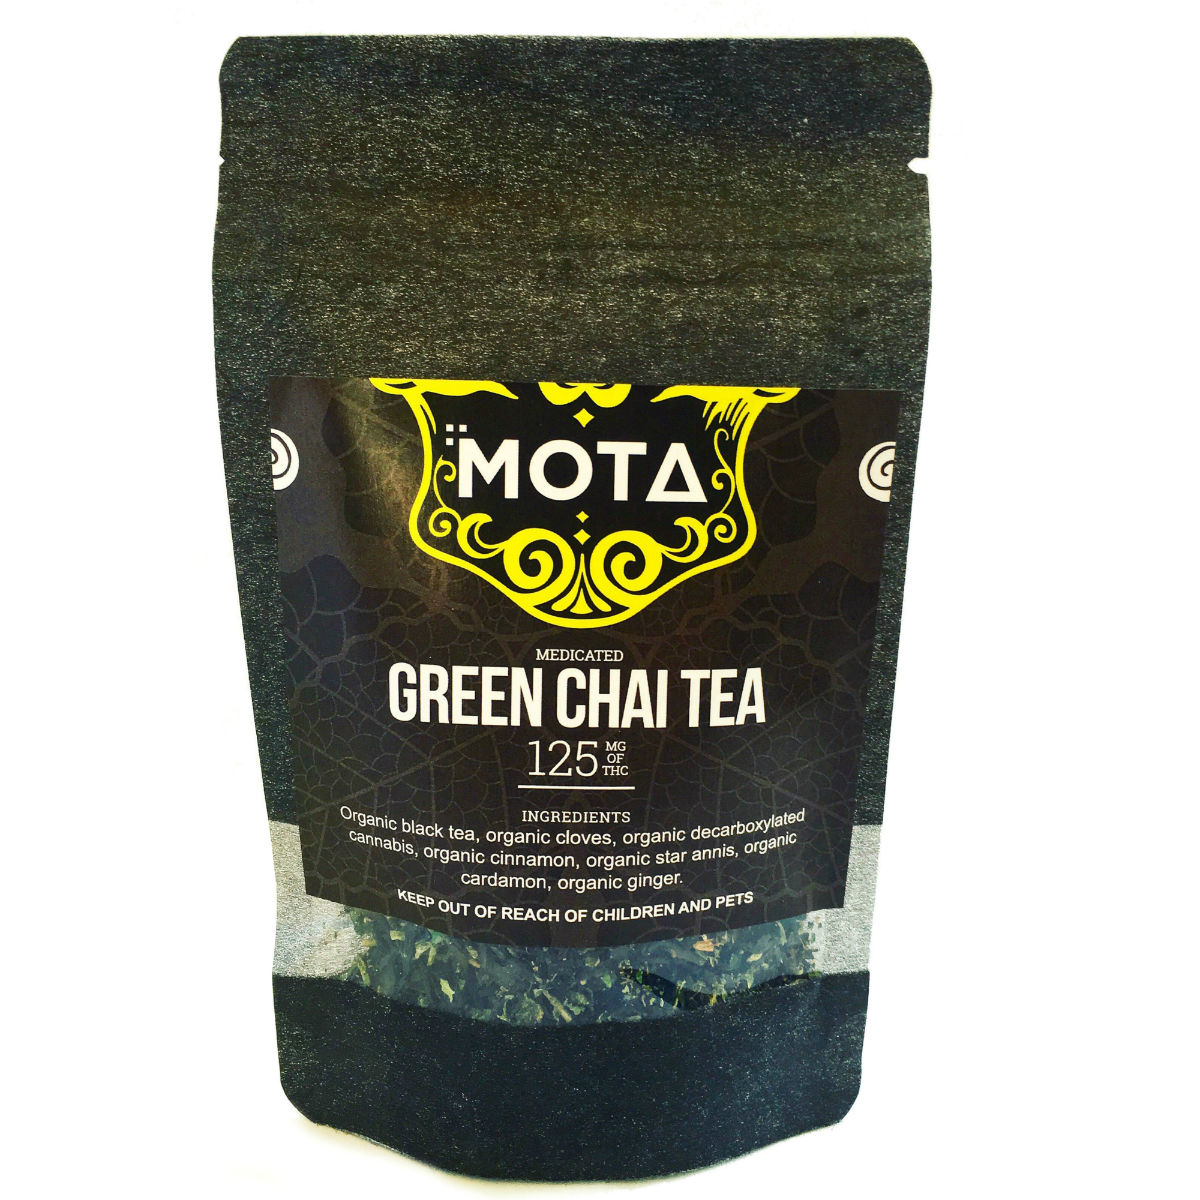 Chai Cannabis Tea by Green Society - Image © 2018 Green Society. All Rights Reserved.